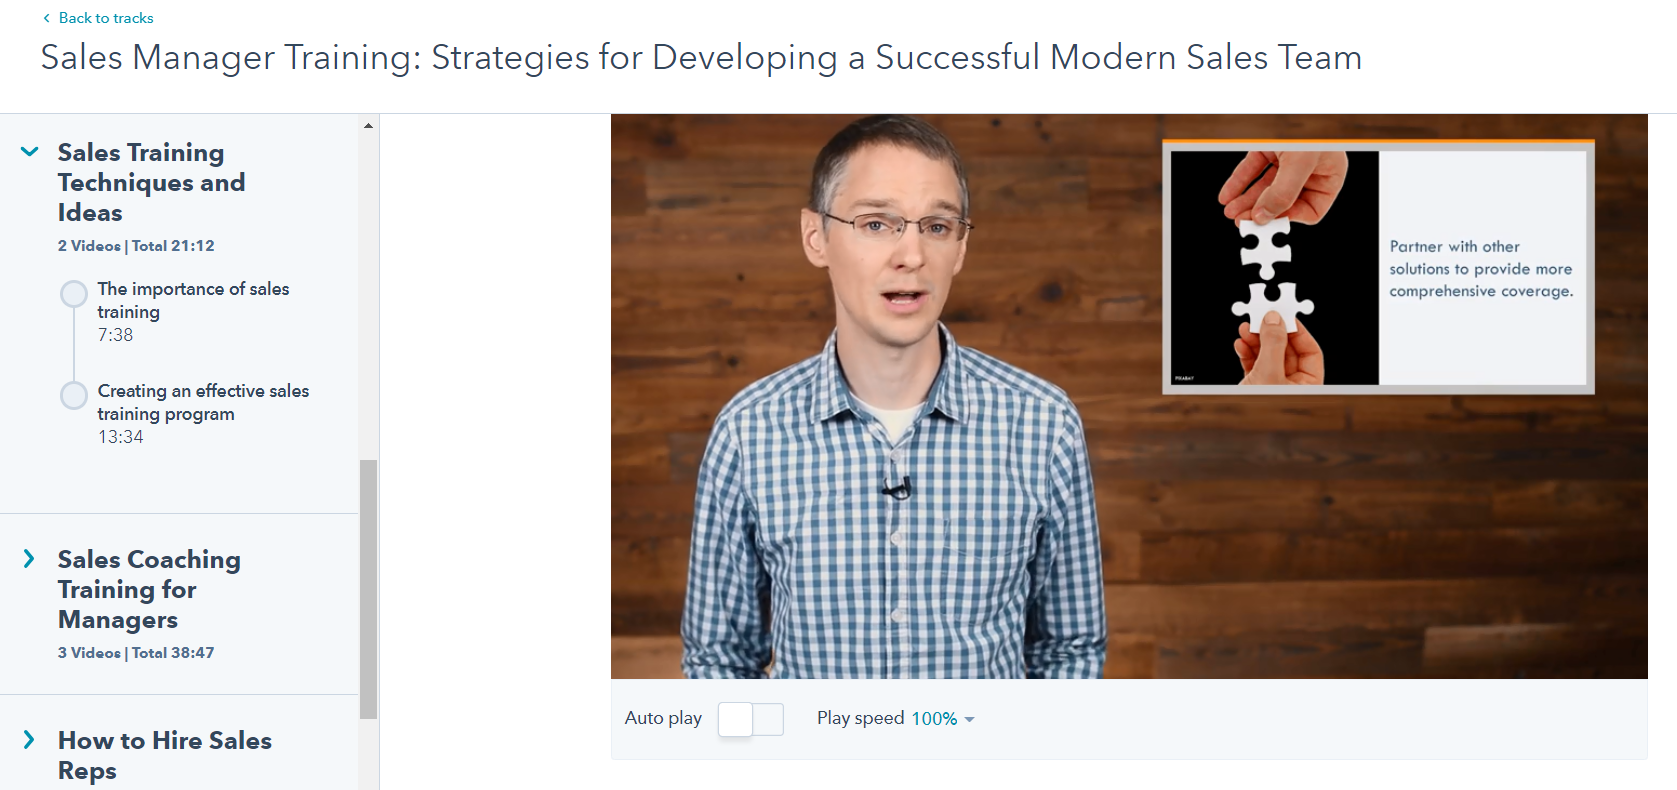 Free Sales Manager Training: Strategies for Developing a Successful Modern Sales Team